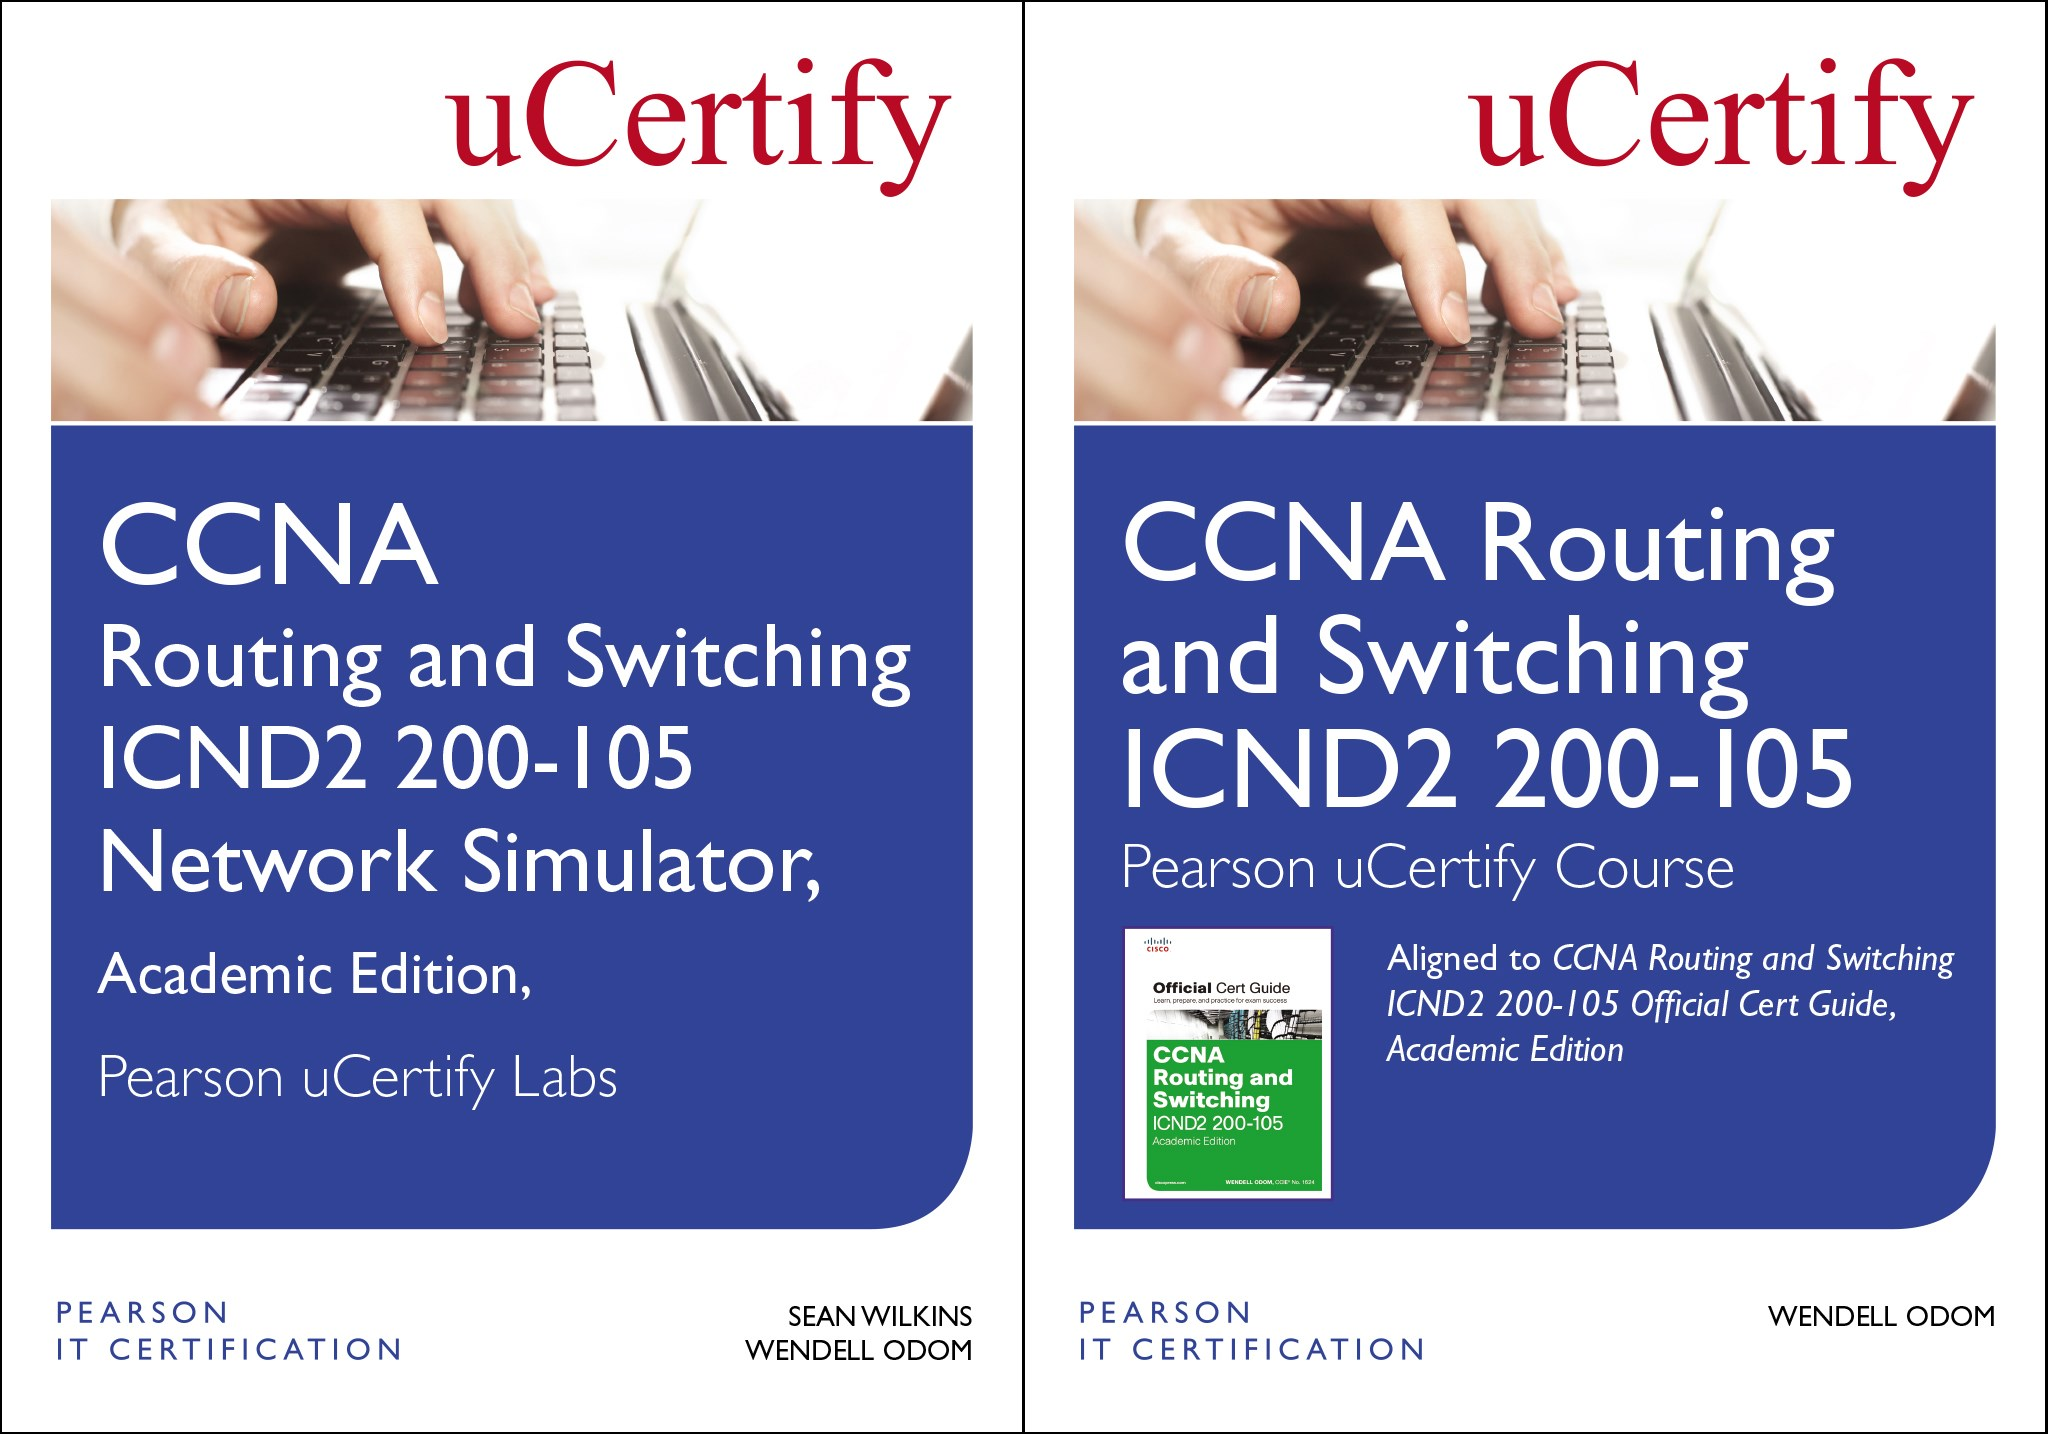 CCNA Routing and Switching ICND2 200-105 Pearson uCertify Course and Network Simulator Academic Edition Bundle